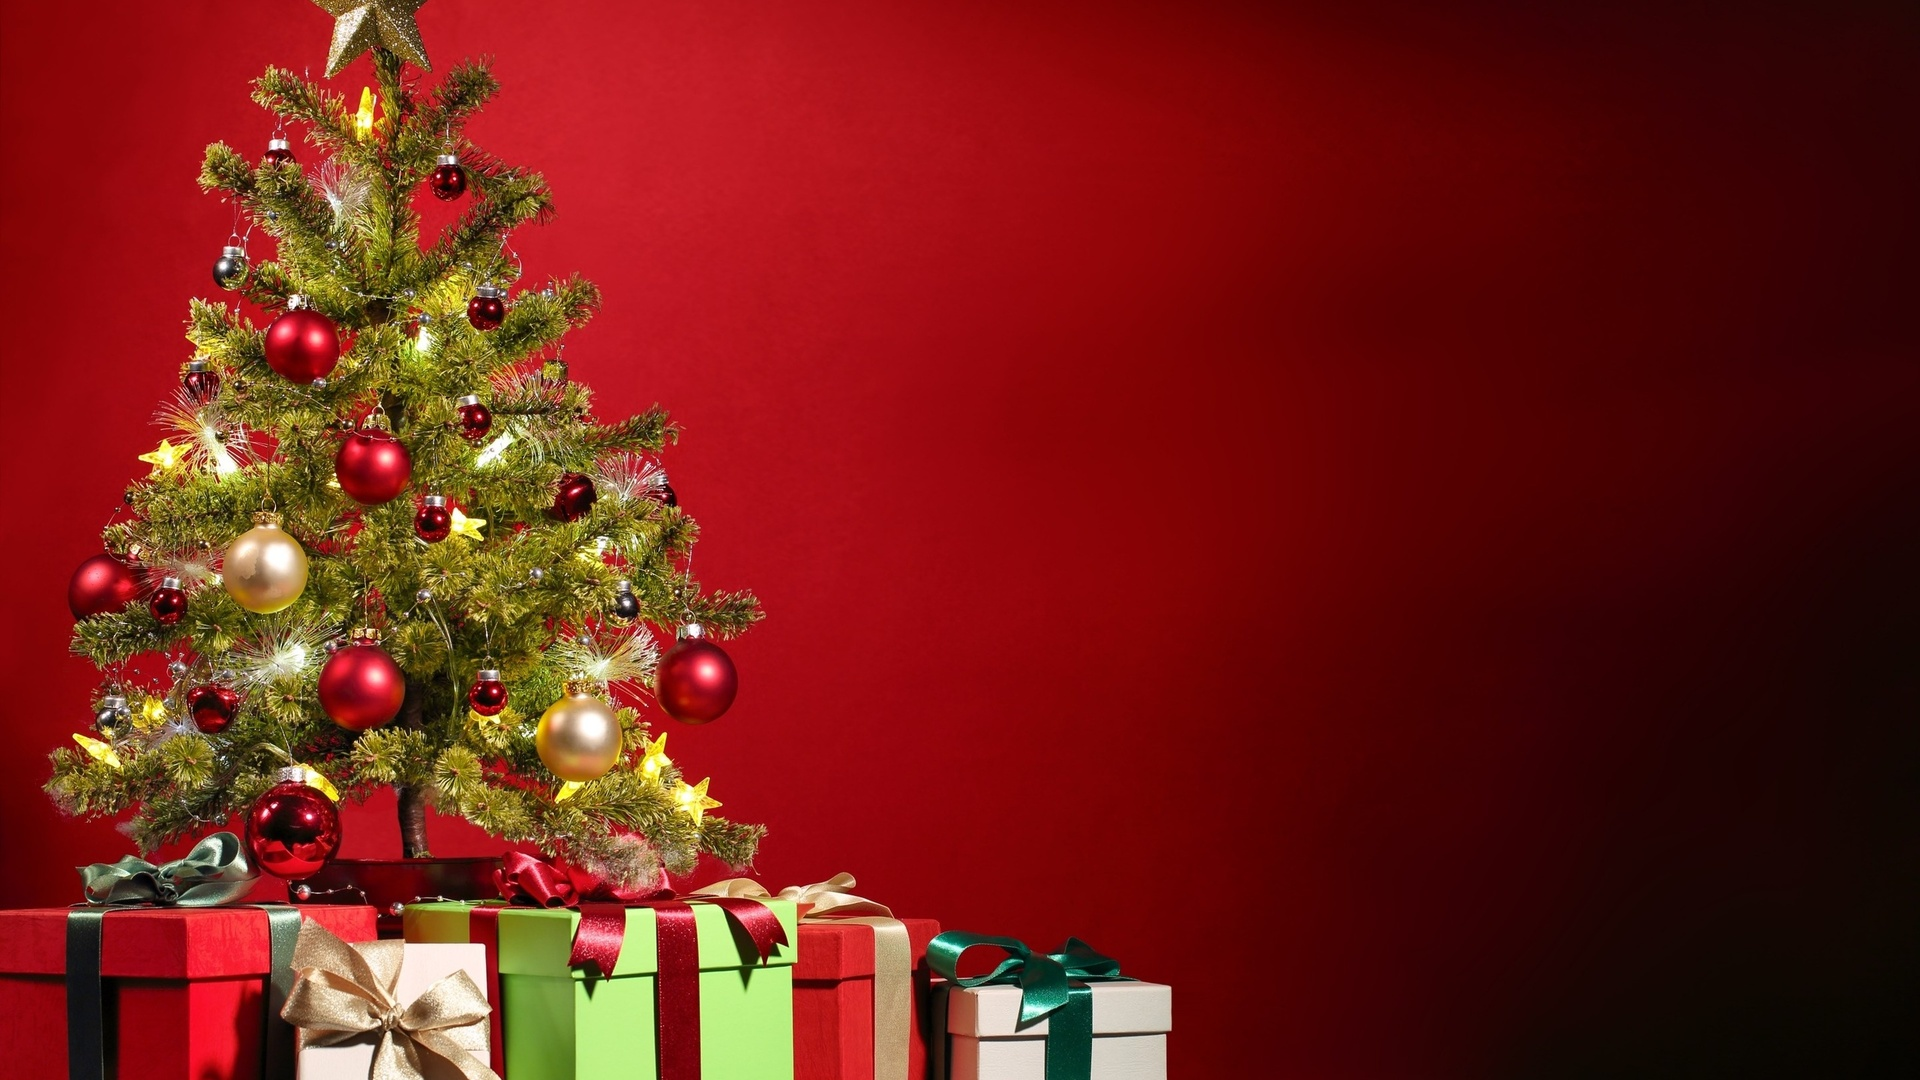 Christmas Tree Backgrounds   HD Wallpapers Pulse beautiful christmas tree wallpapers